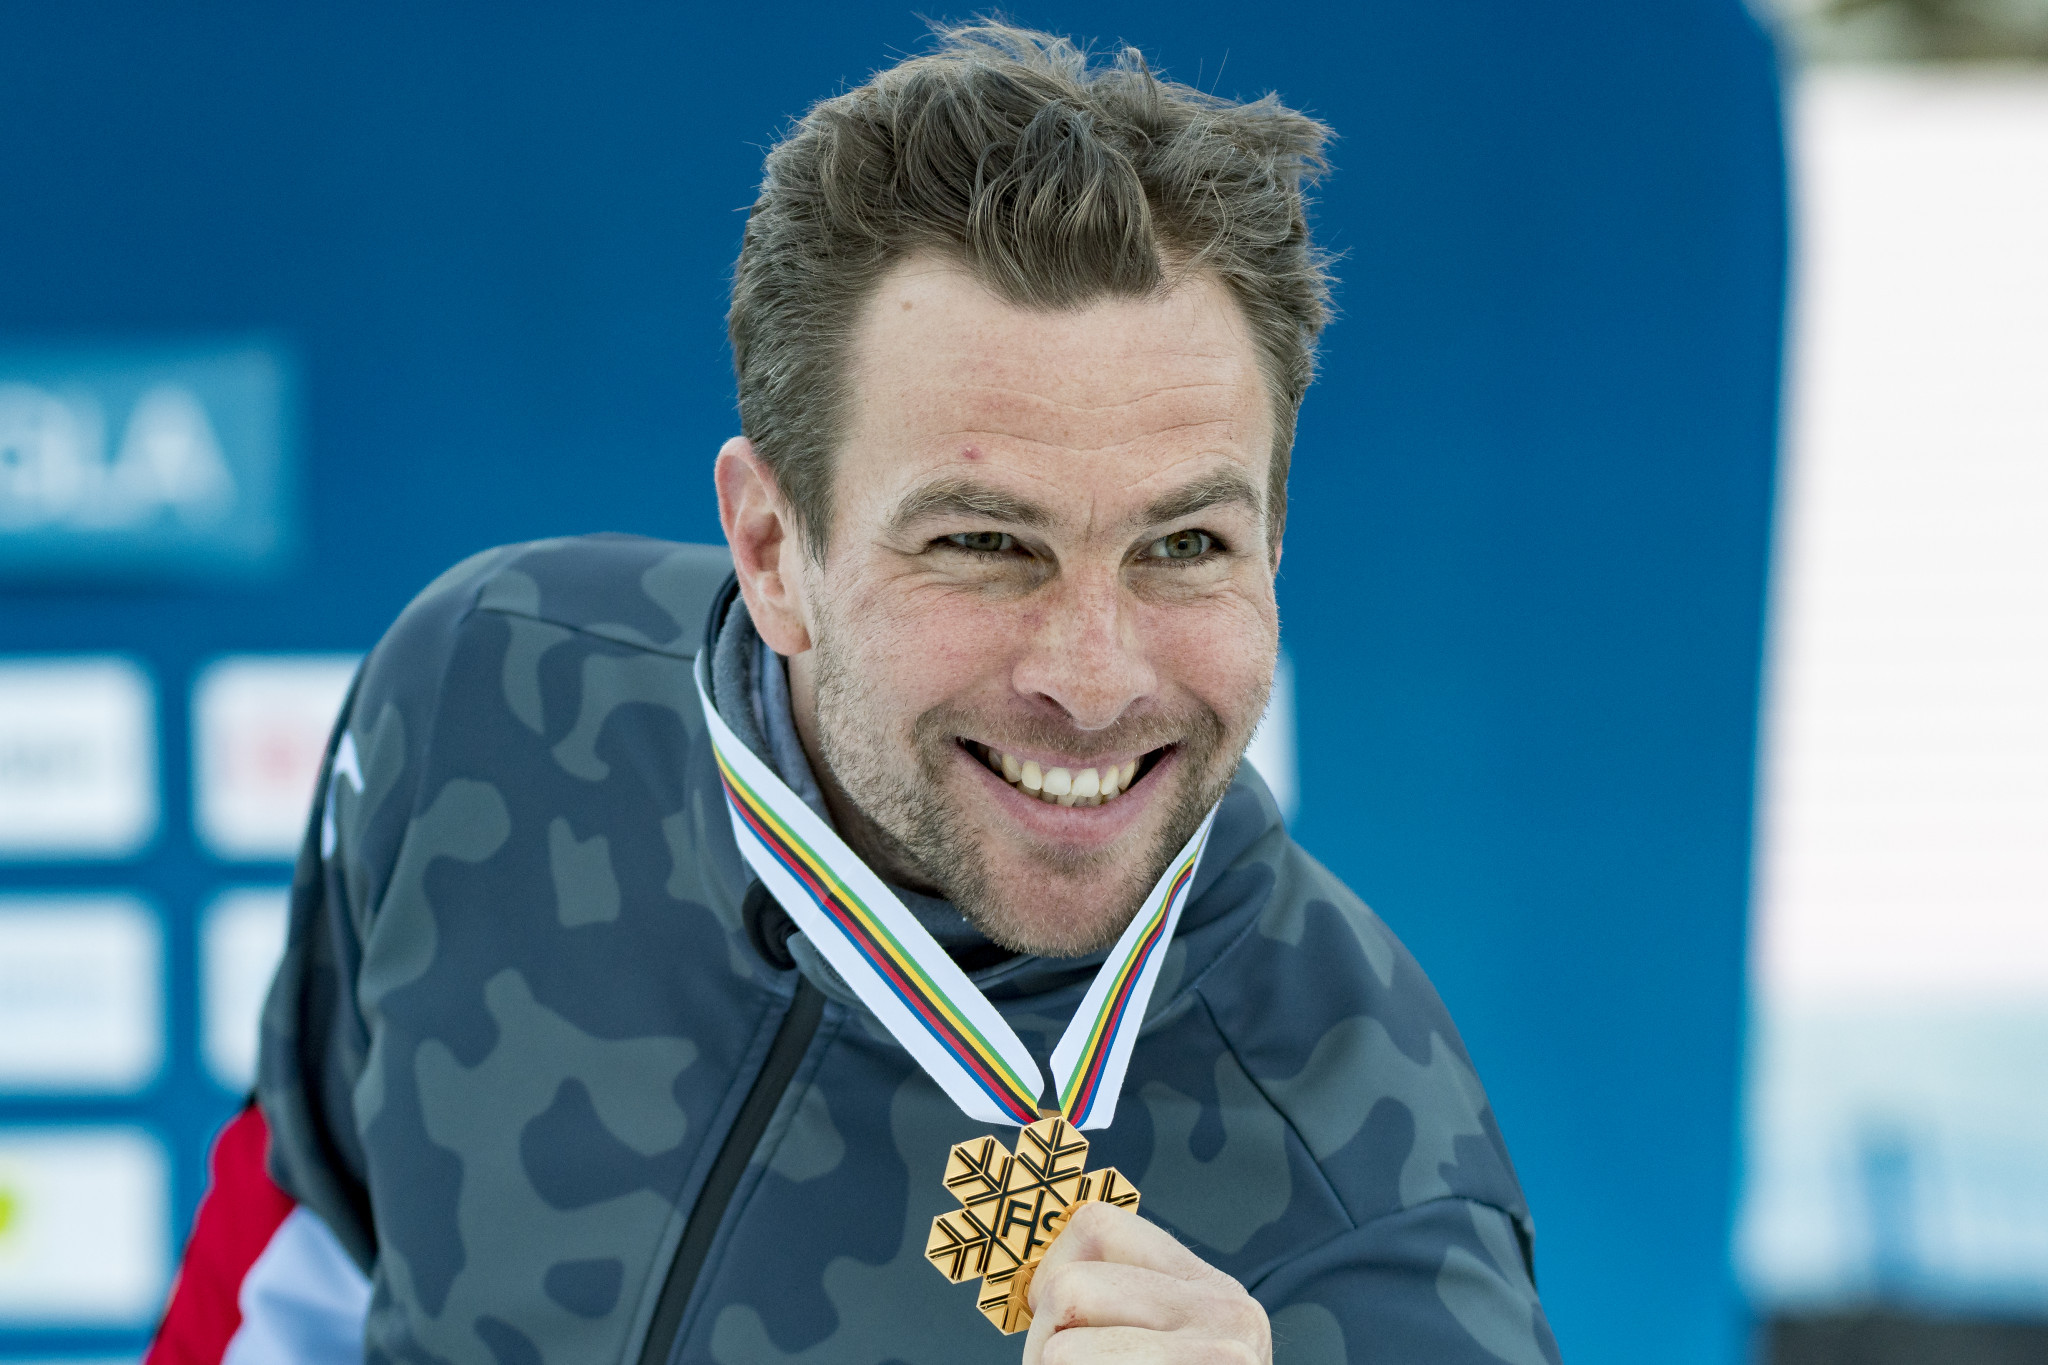 Karl earns fifth title at FIS Snowboard World Championships after parallel slalom victory